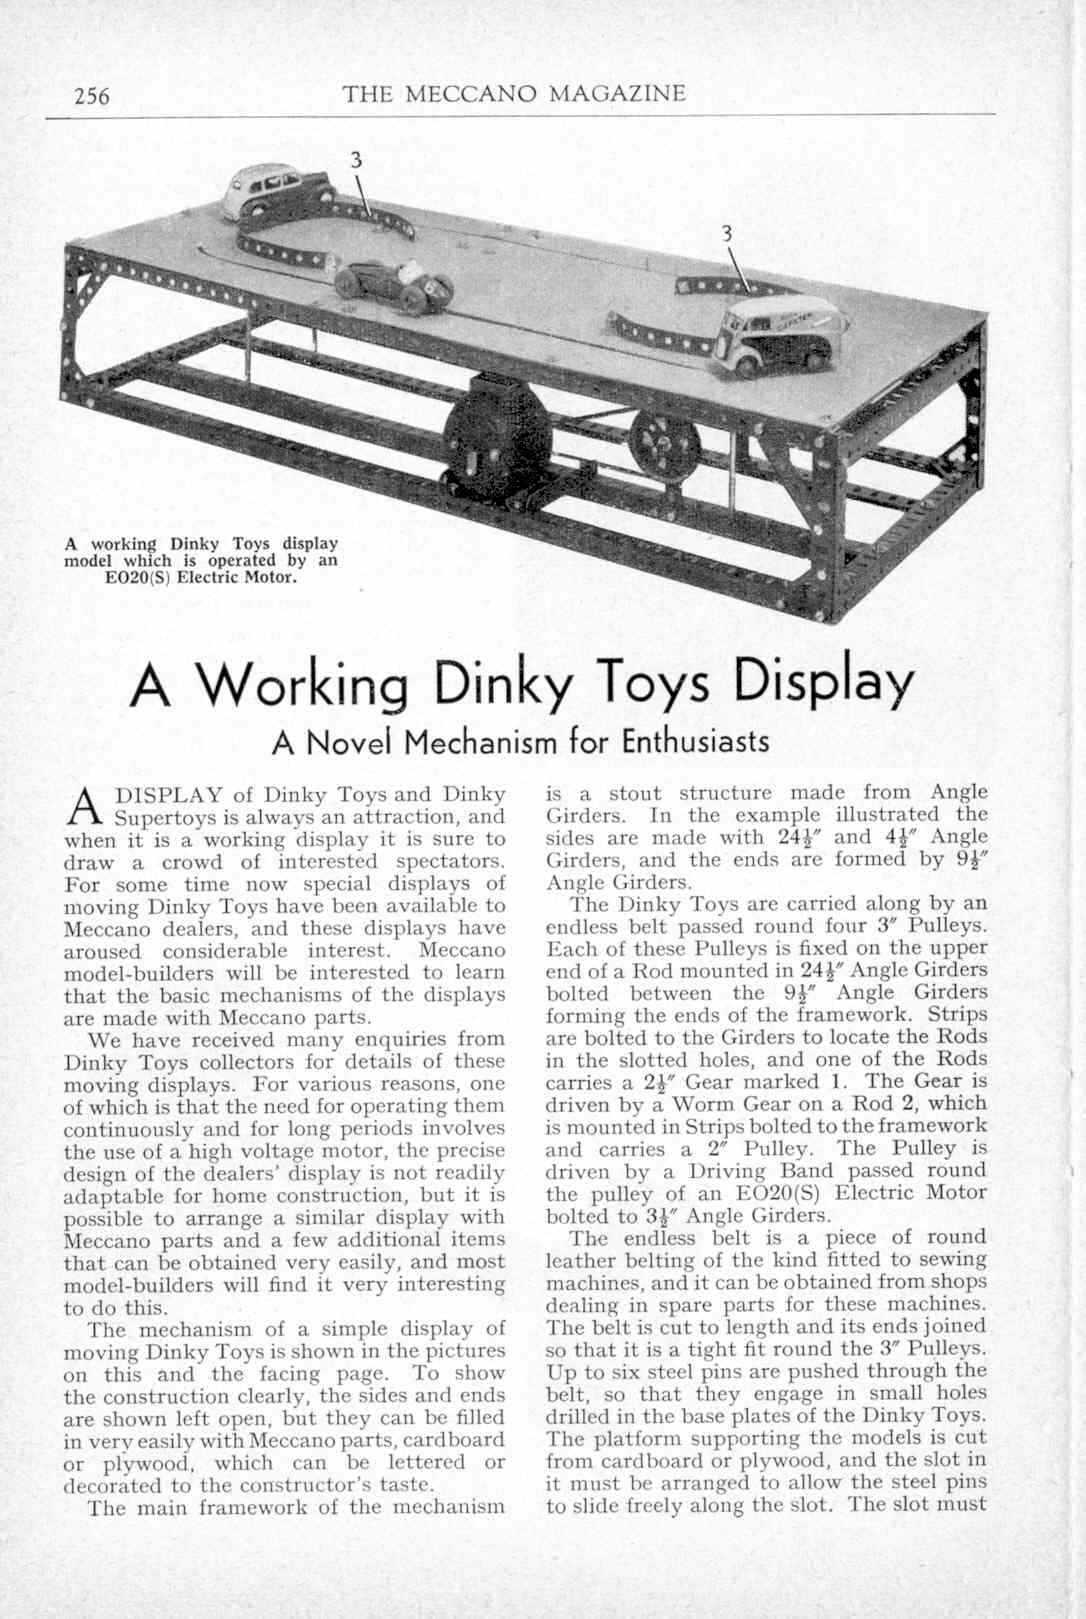 UK Meccano Magazine May 1959 Page 256